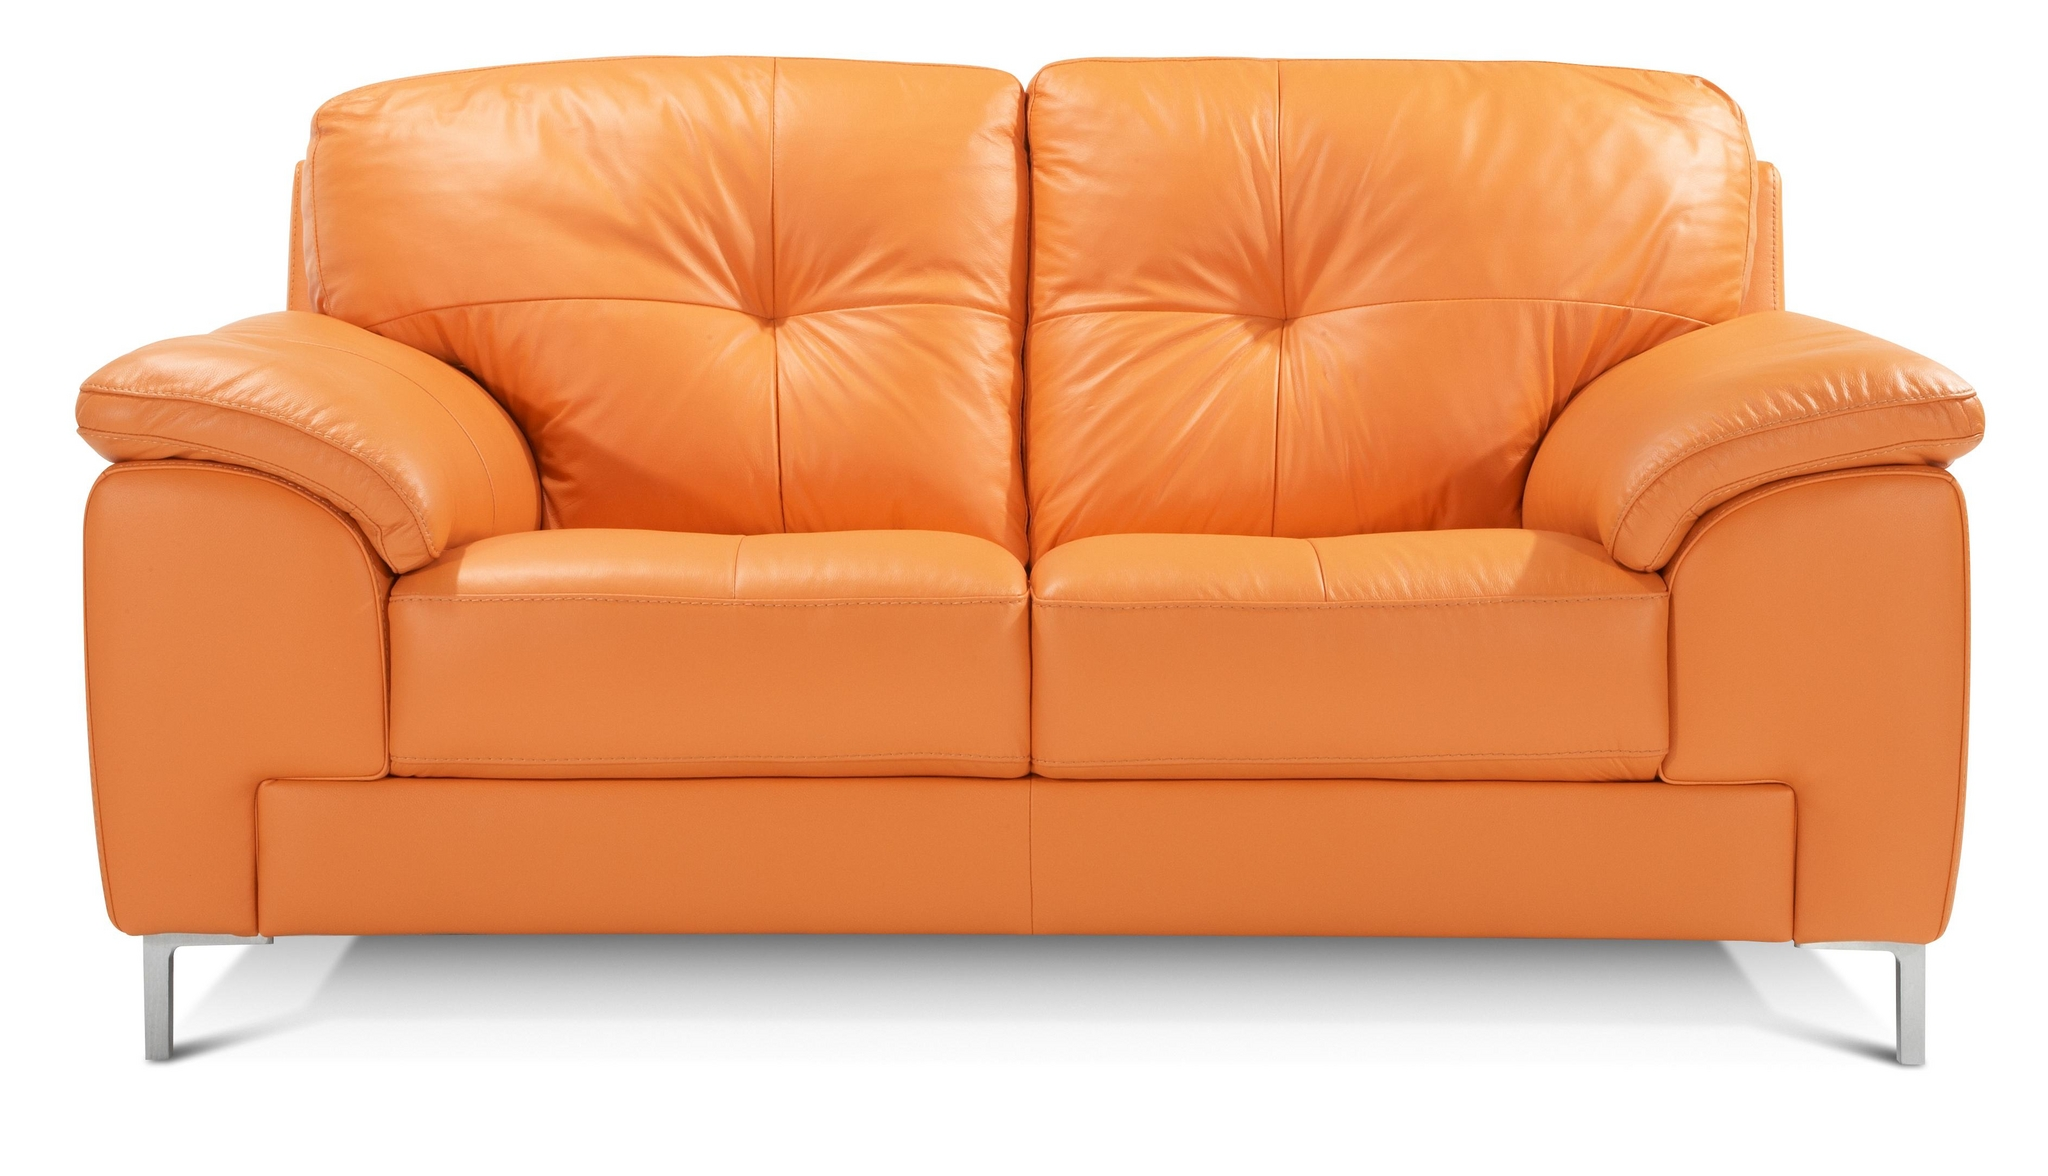 Dfs Ainsley 100 Real Leather Orange 2 Seater Sofa Ebay